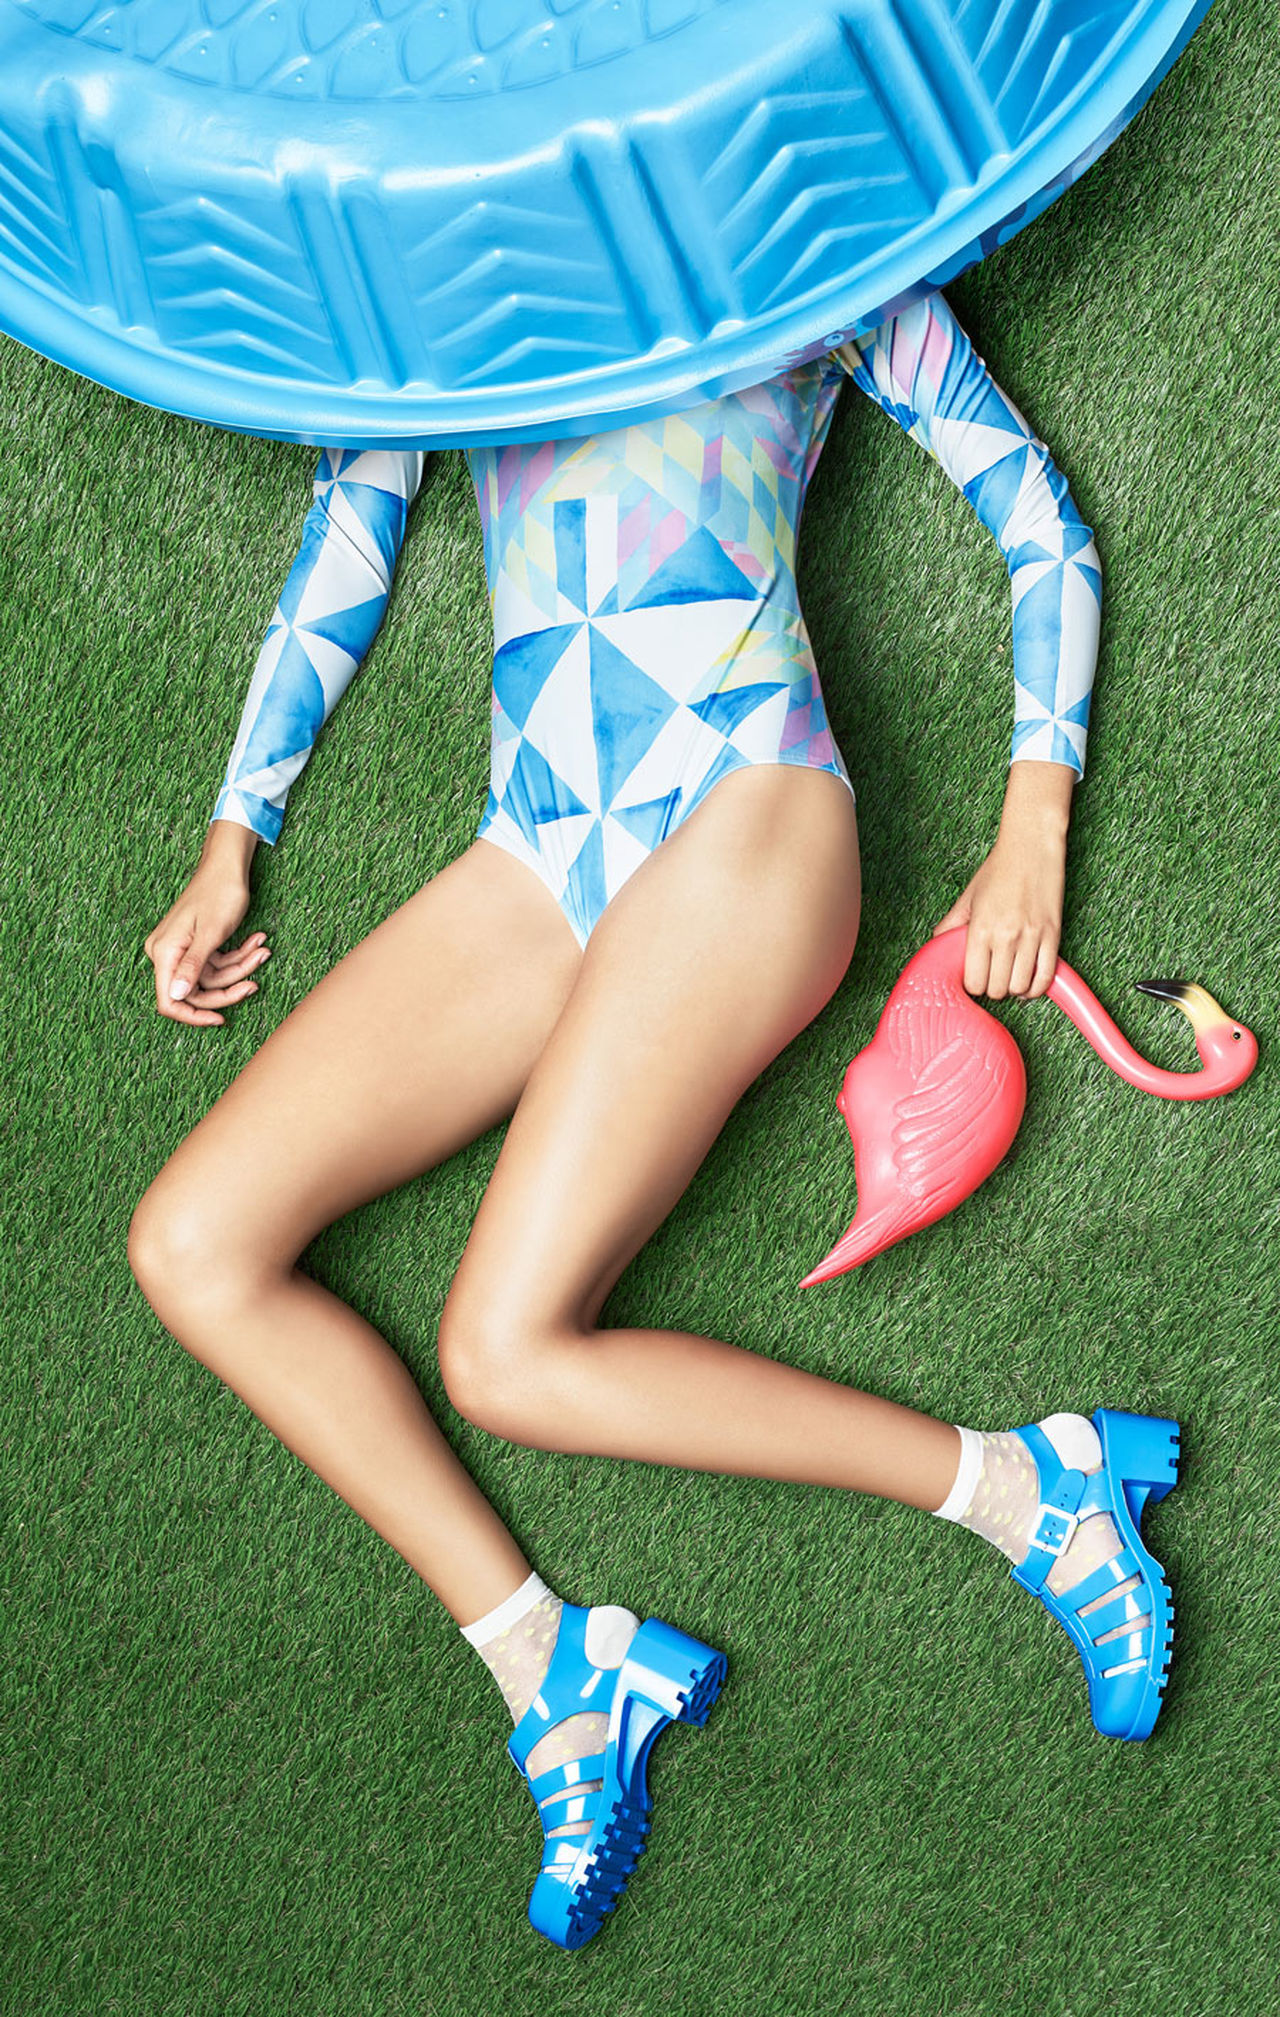 blue fake grass Flamingo Grass Green color jelly shoes legs lying down one person only women pool socks swimming pool swimsuit fashion young adult